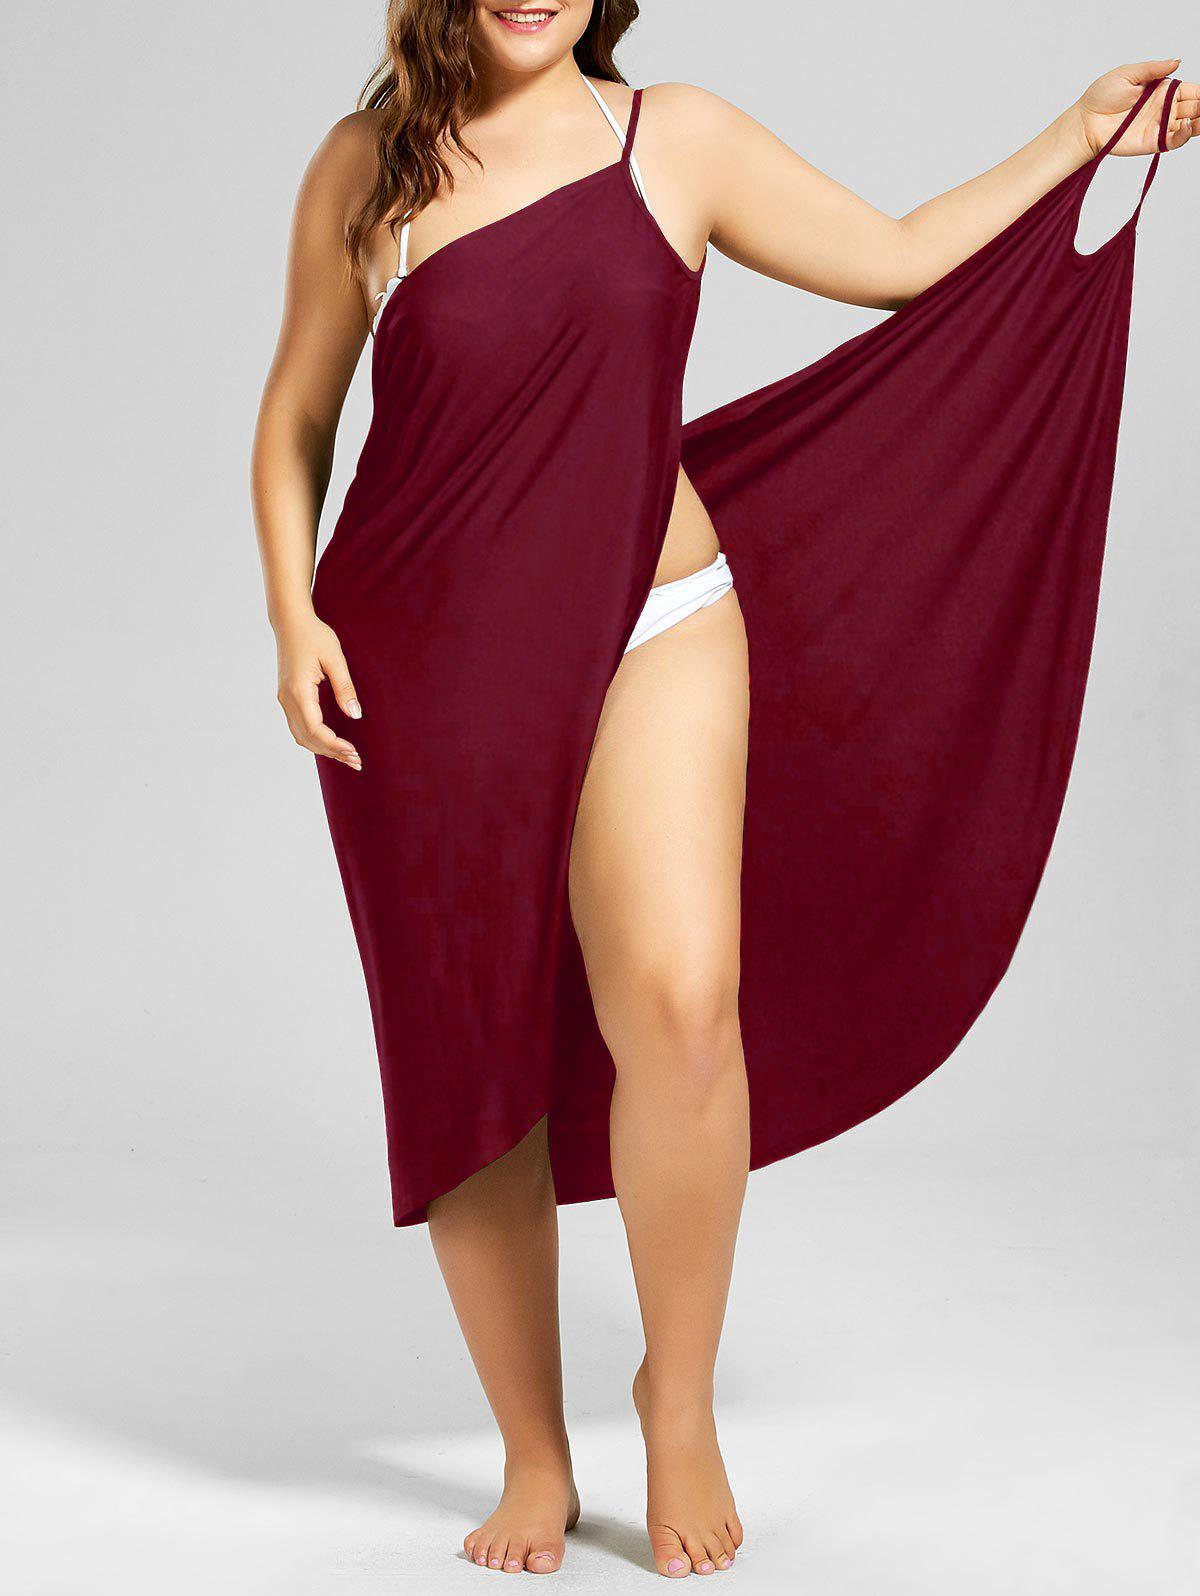 Beach Cover-up Plus Size Wrap DressWOMEN<br><br>Size: 3XL; Color: WINE RED; Gender: For Women; Swimwear Type: Cover-Up; Material: Polyester,Spandex; Pattern Type: Solid; Waist: Natural; Elasticity: Elastic; Weight: 0.3000kg; Package Contents: 1 x Cover Up Dress;